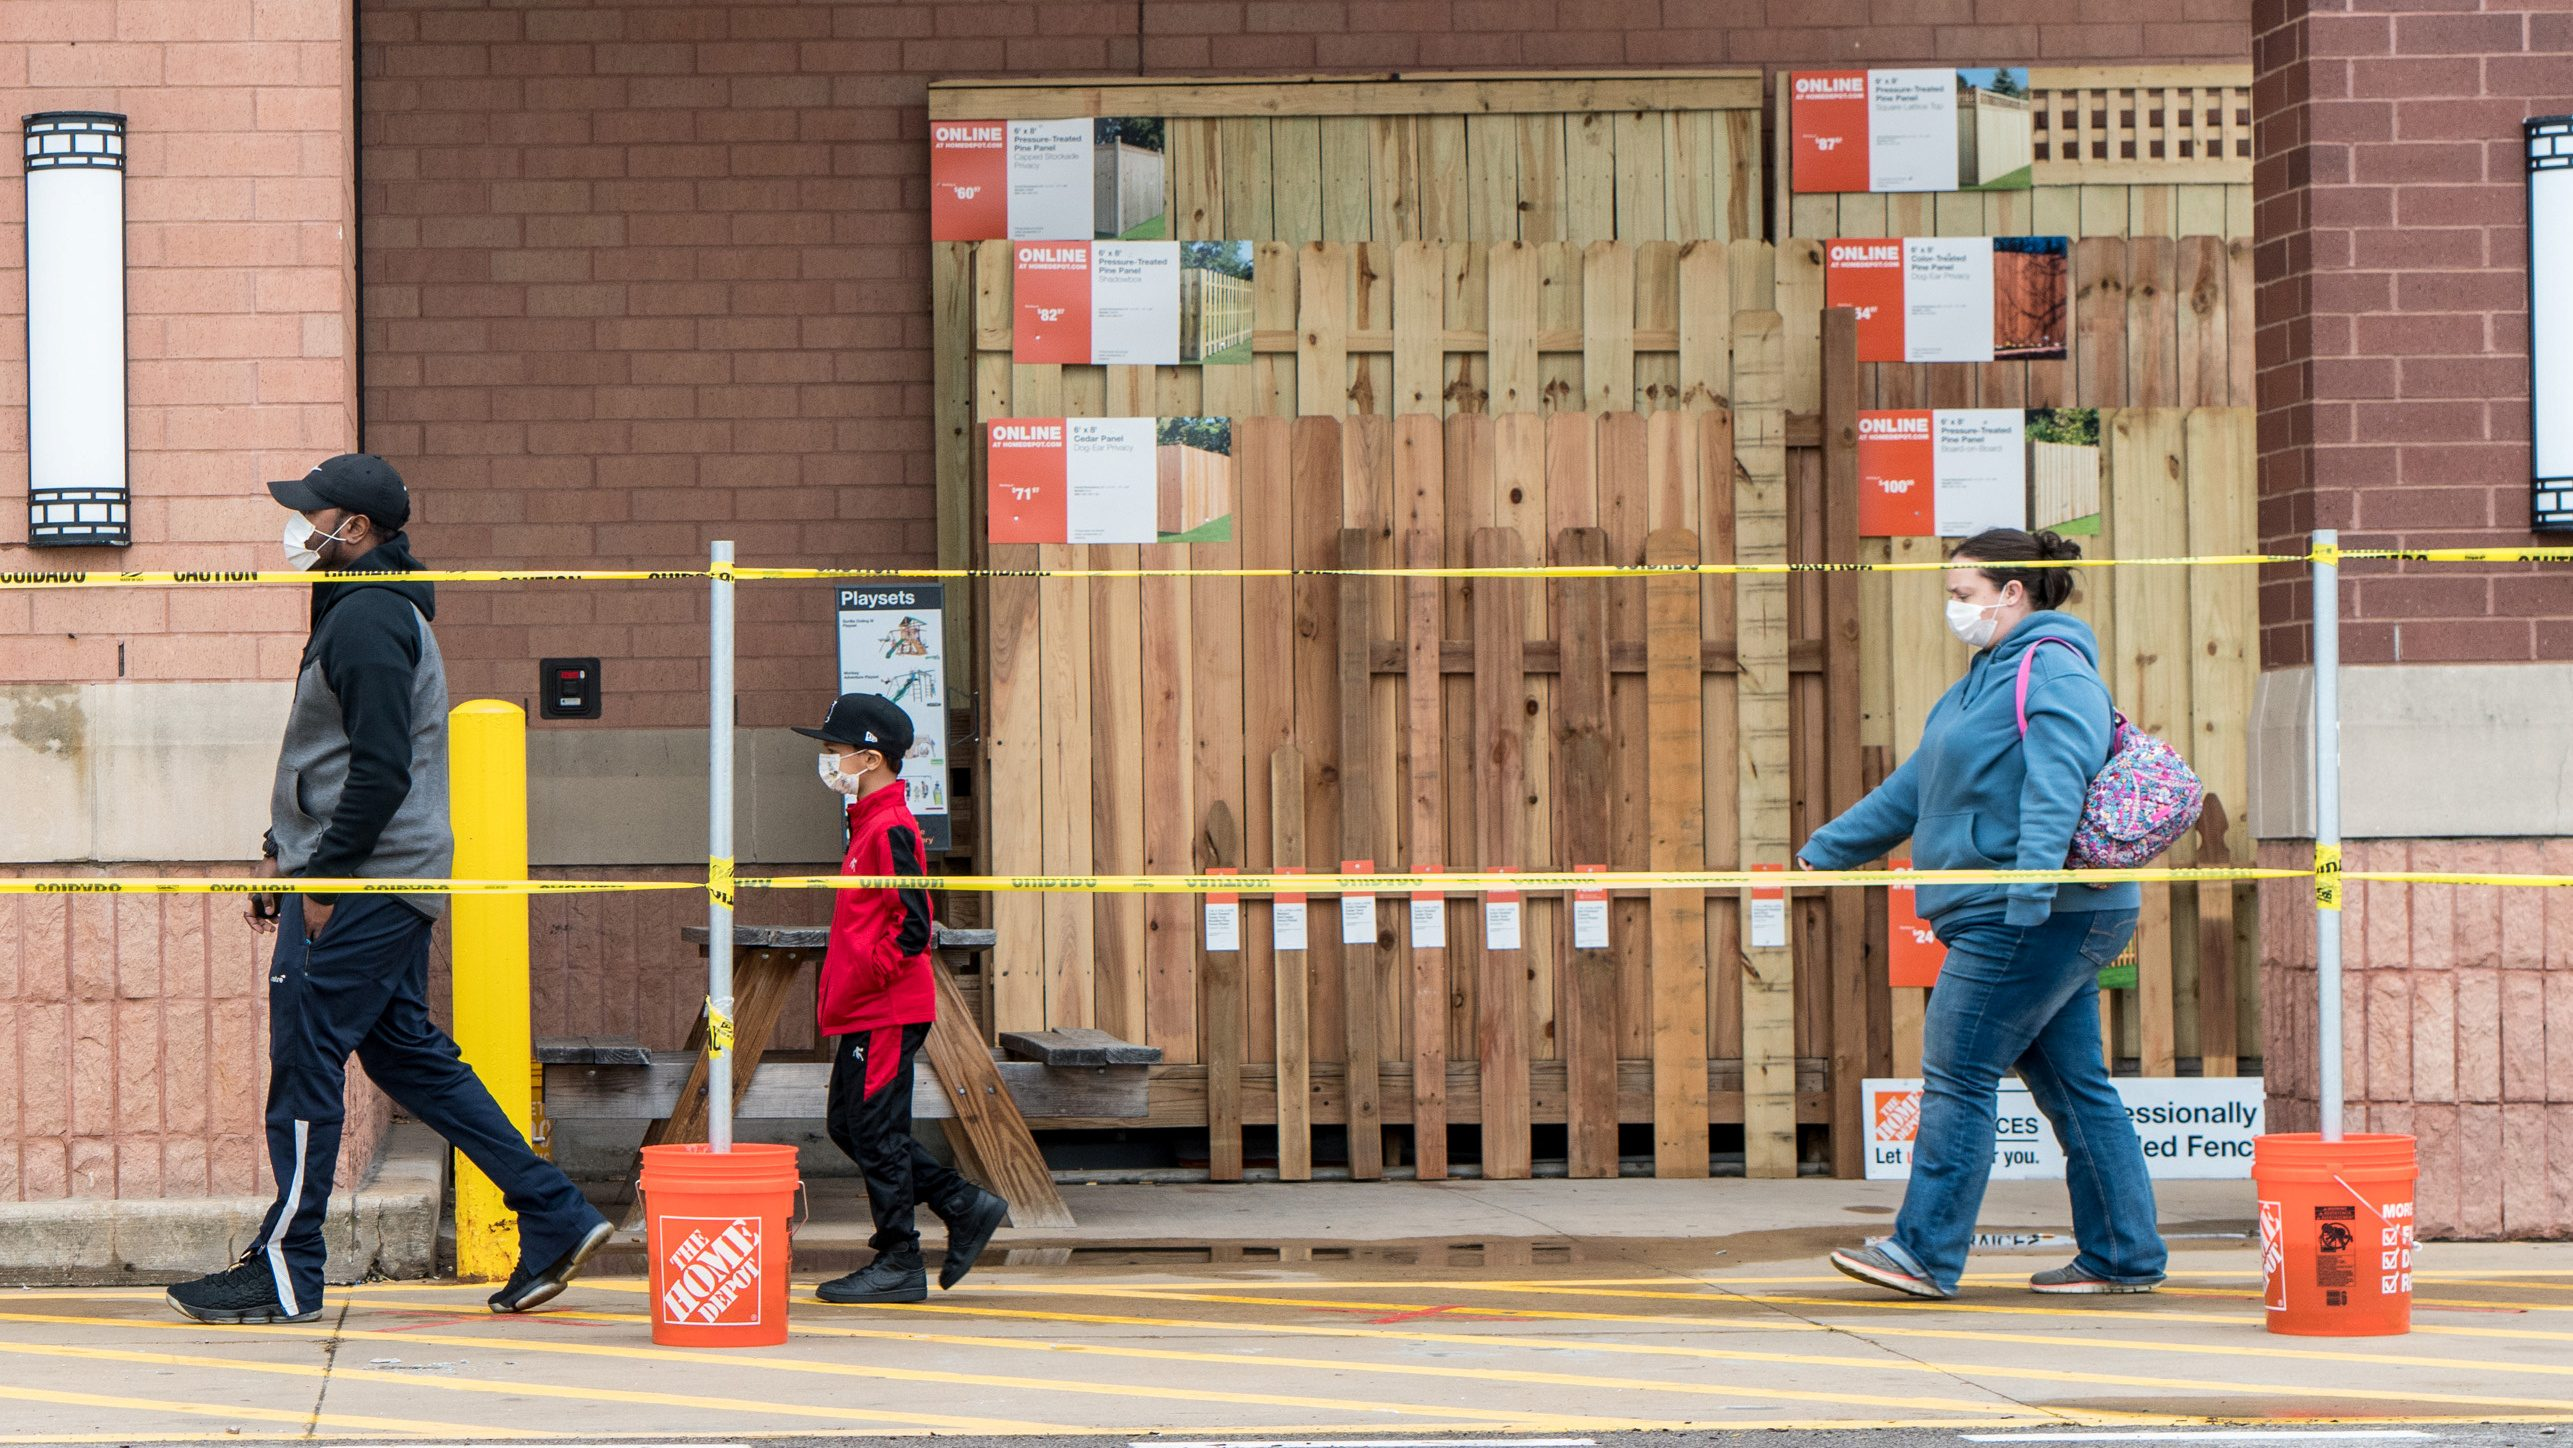 A man, a small boy, and a woman line up outside a Home Depot store while wearing masks and walking several feet apart in front of a fencing display.